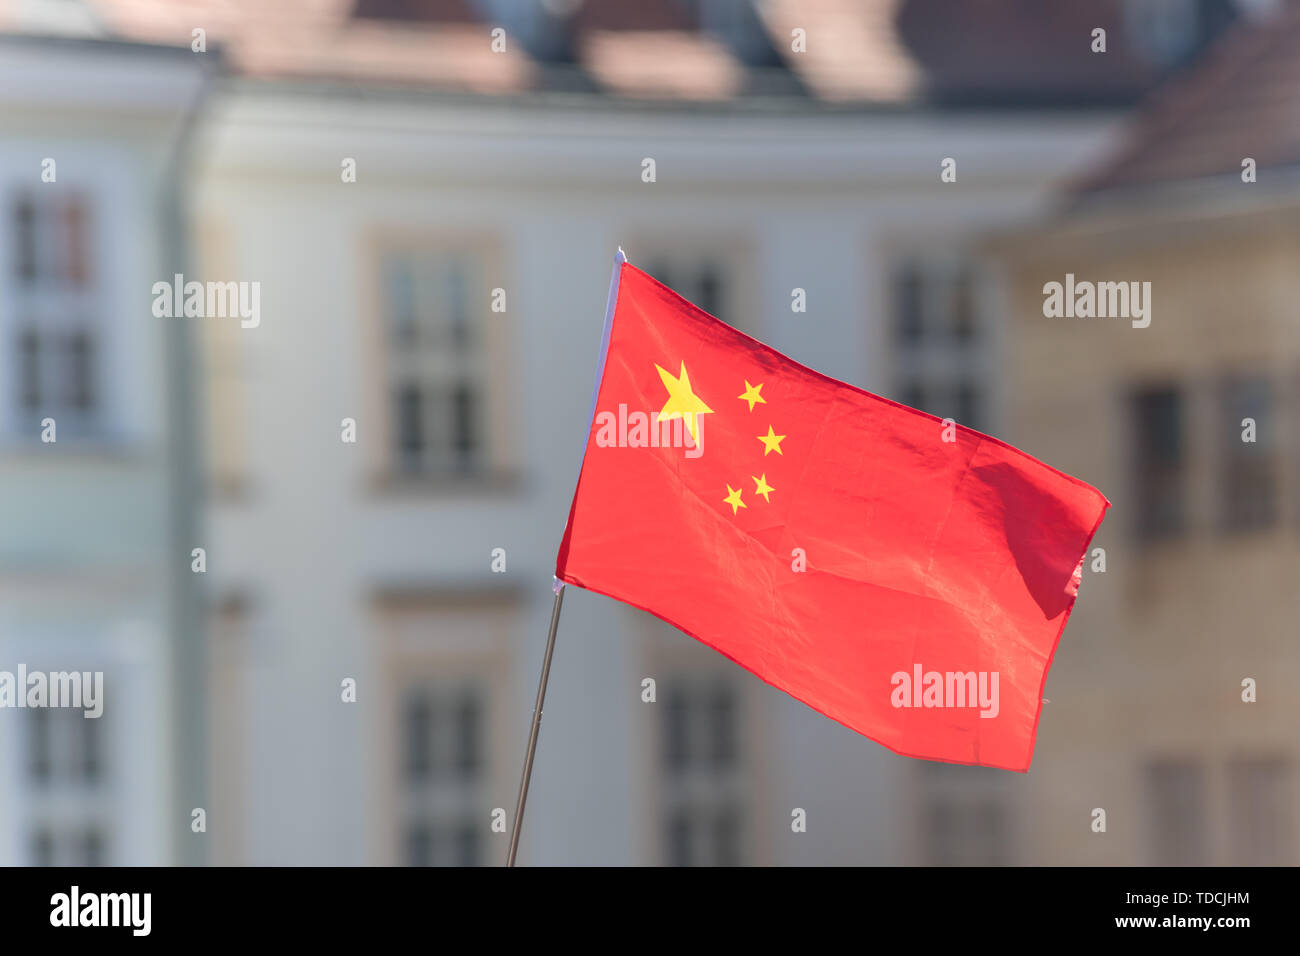 PRAGUE, CZECH REPUBLIC 16-04-2019: China flag waving in the wind against blurred historic building Stock Photo